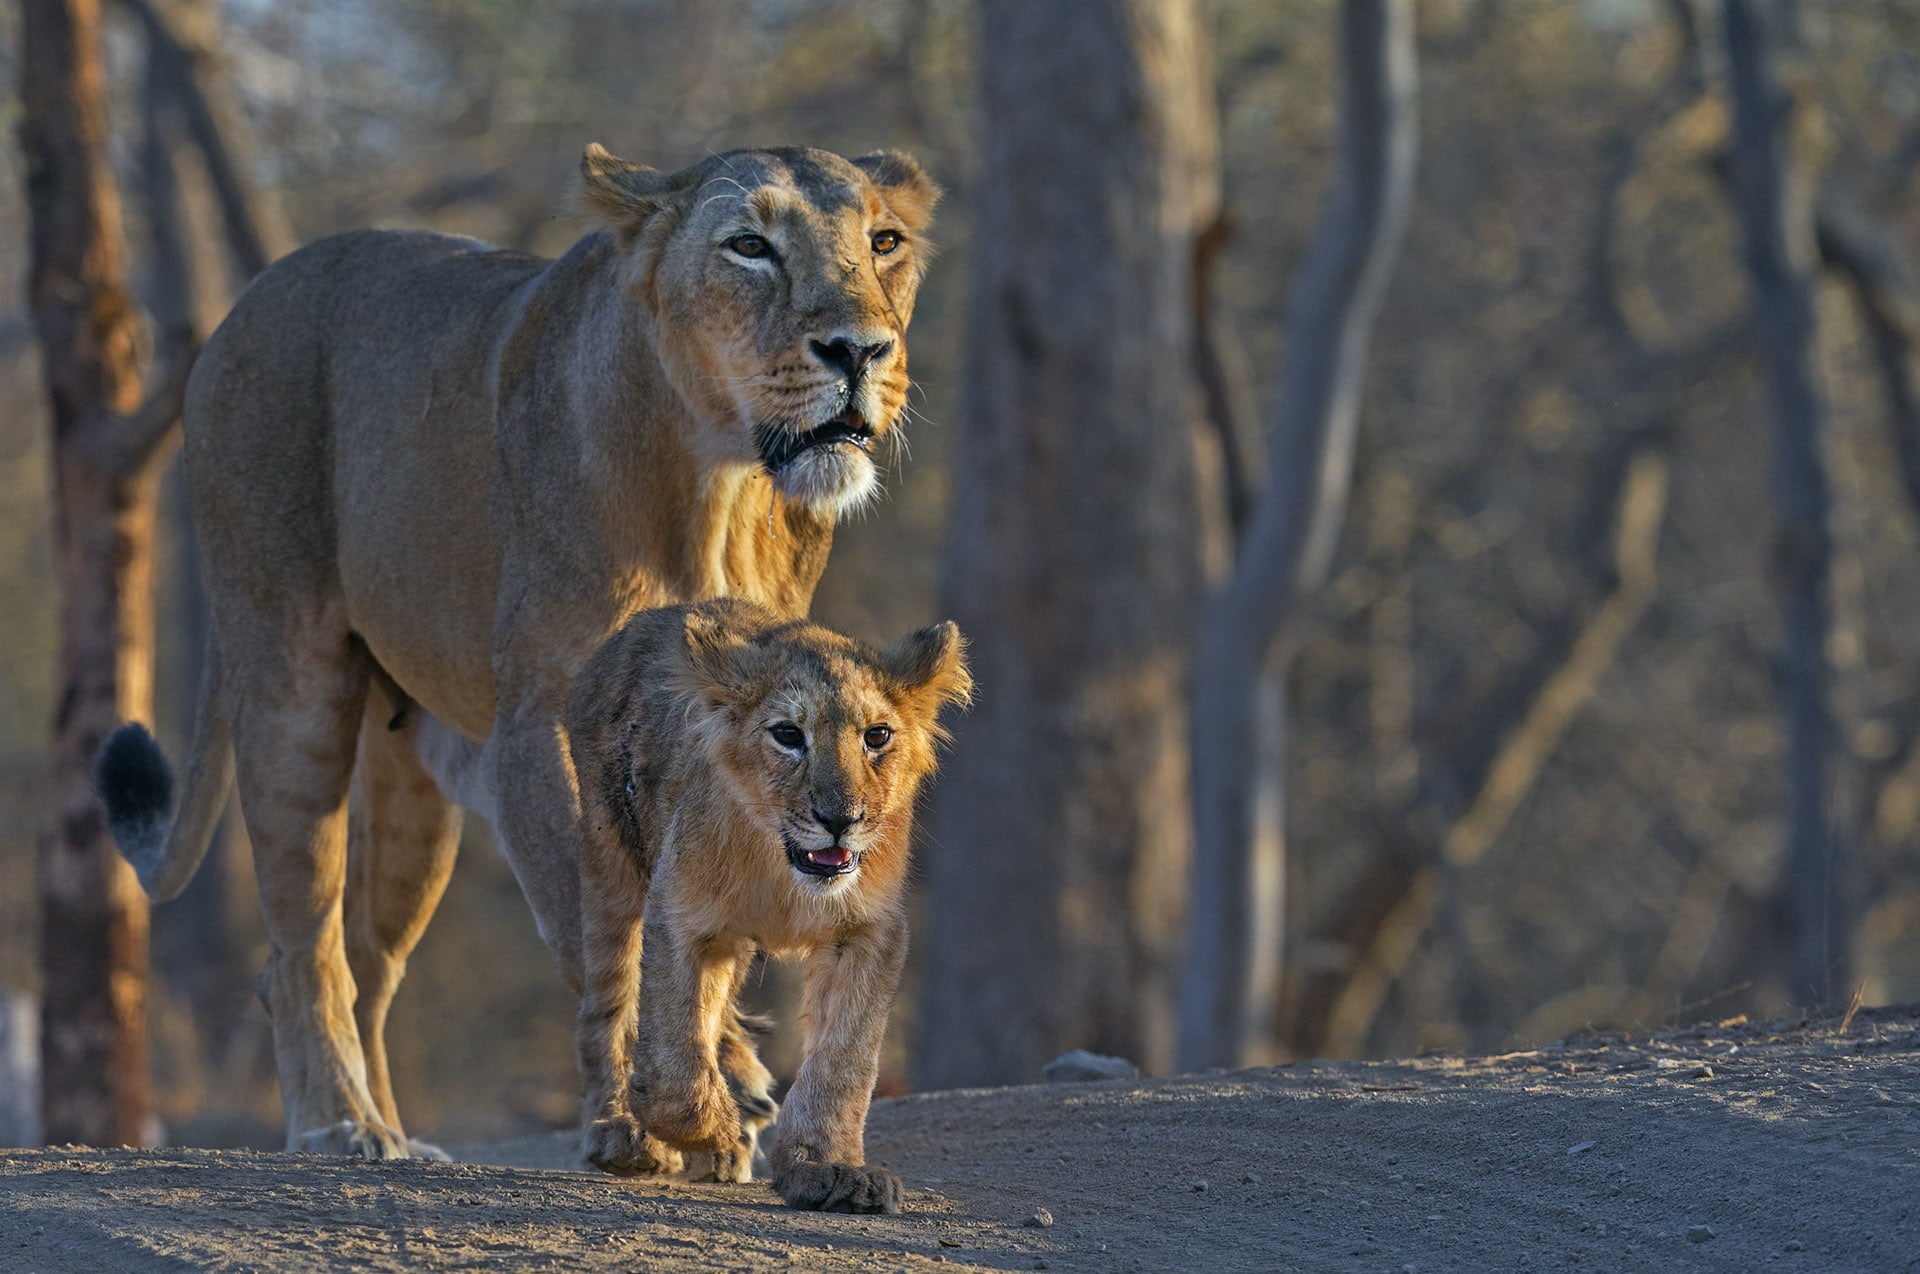 The Asiatic lion mother is an attentive parent. She teaches her cubs to hunt and protects her young from other aggressive adult males. The cubs live with mothers for 1-2 years. Photo: Dhritiman Mukherjee